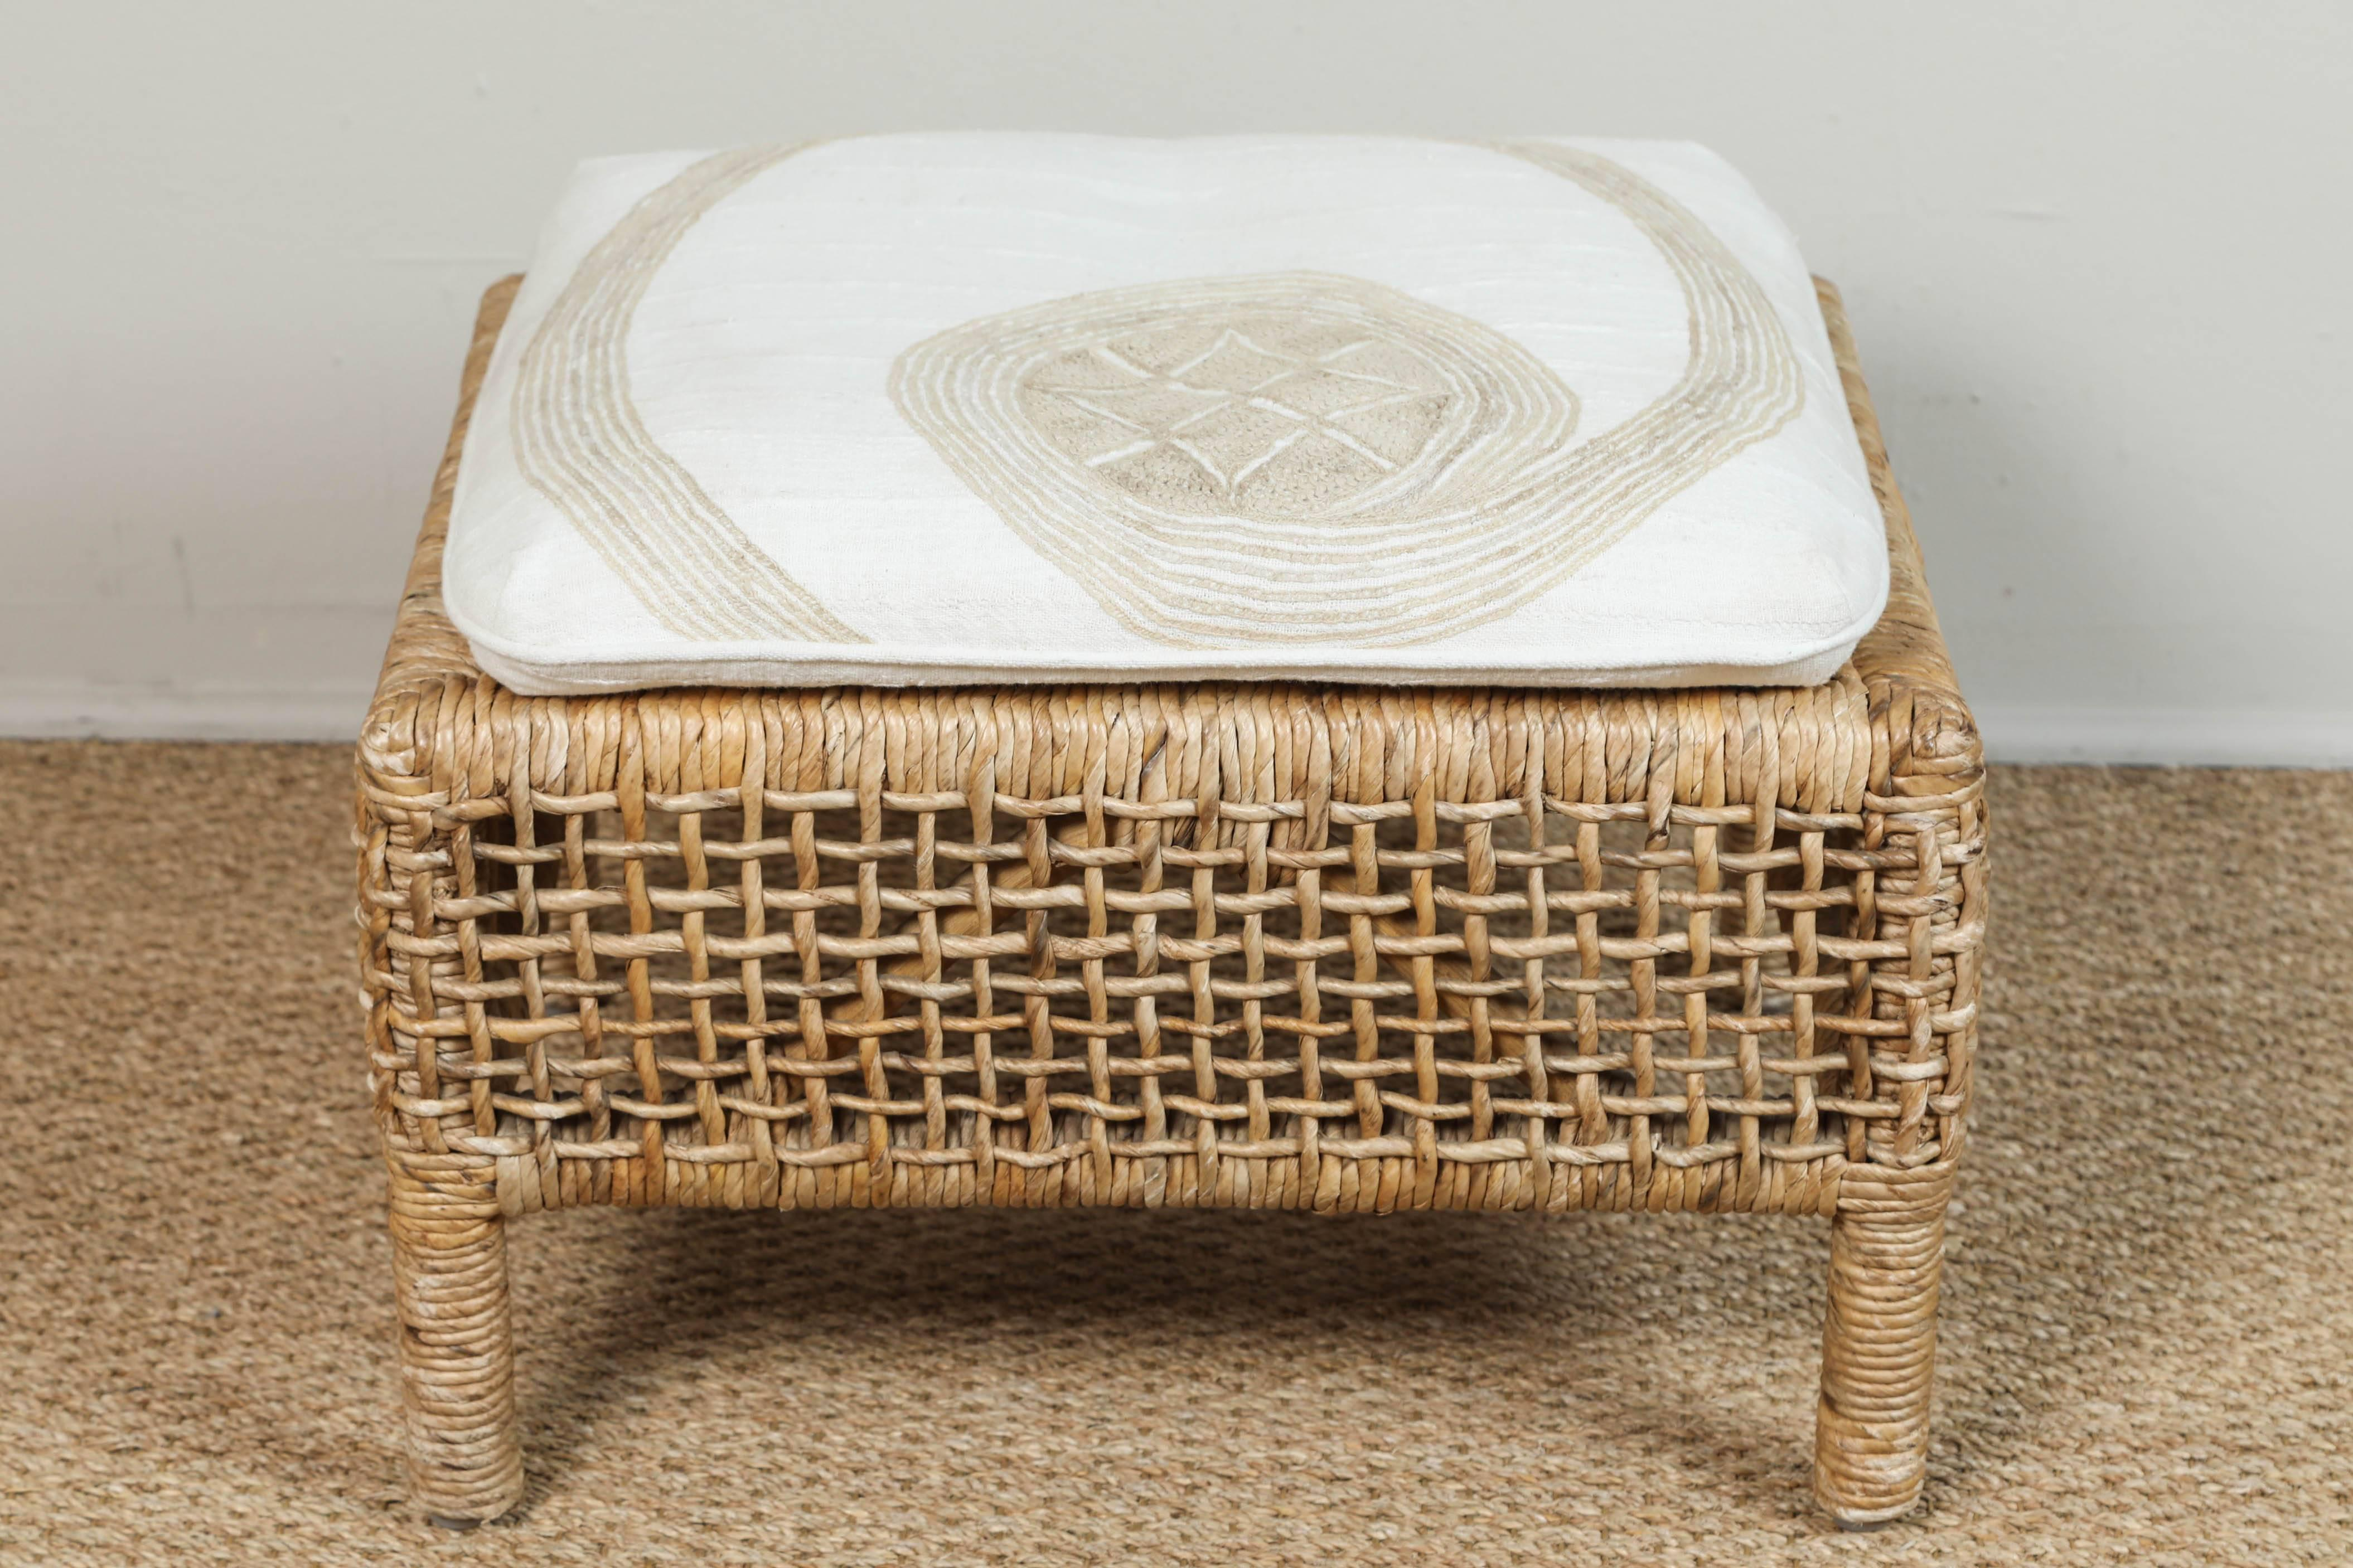 Rattan Chair And Ottoman With African Textile Cushions For